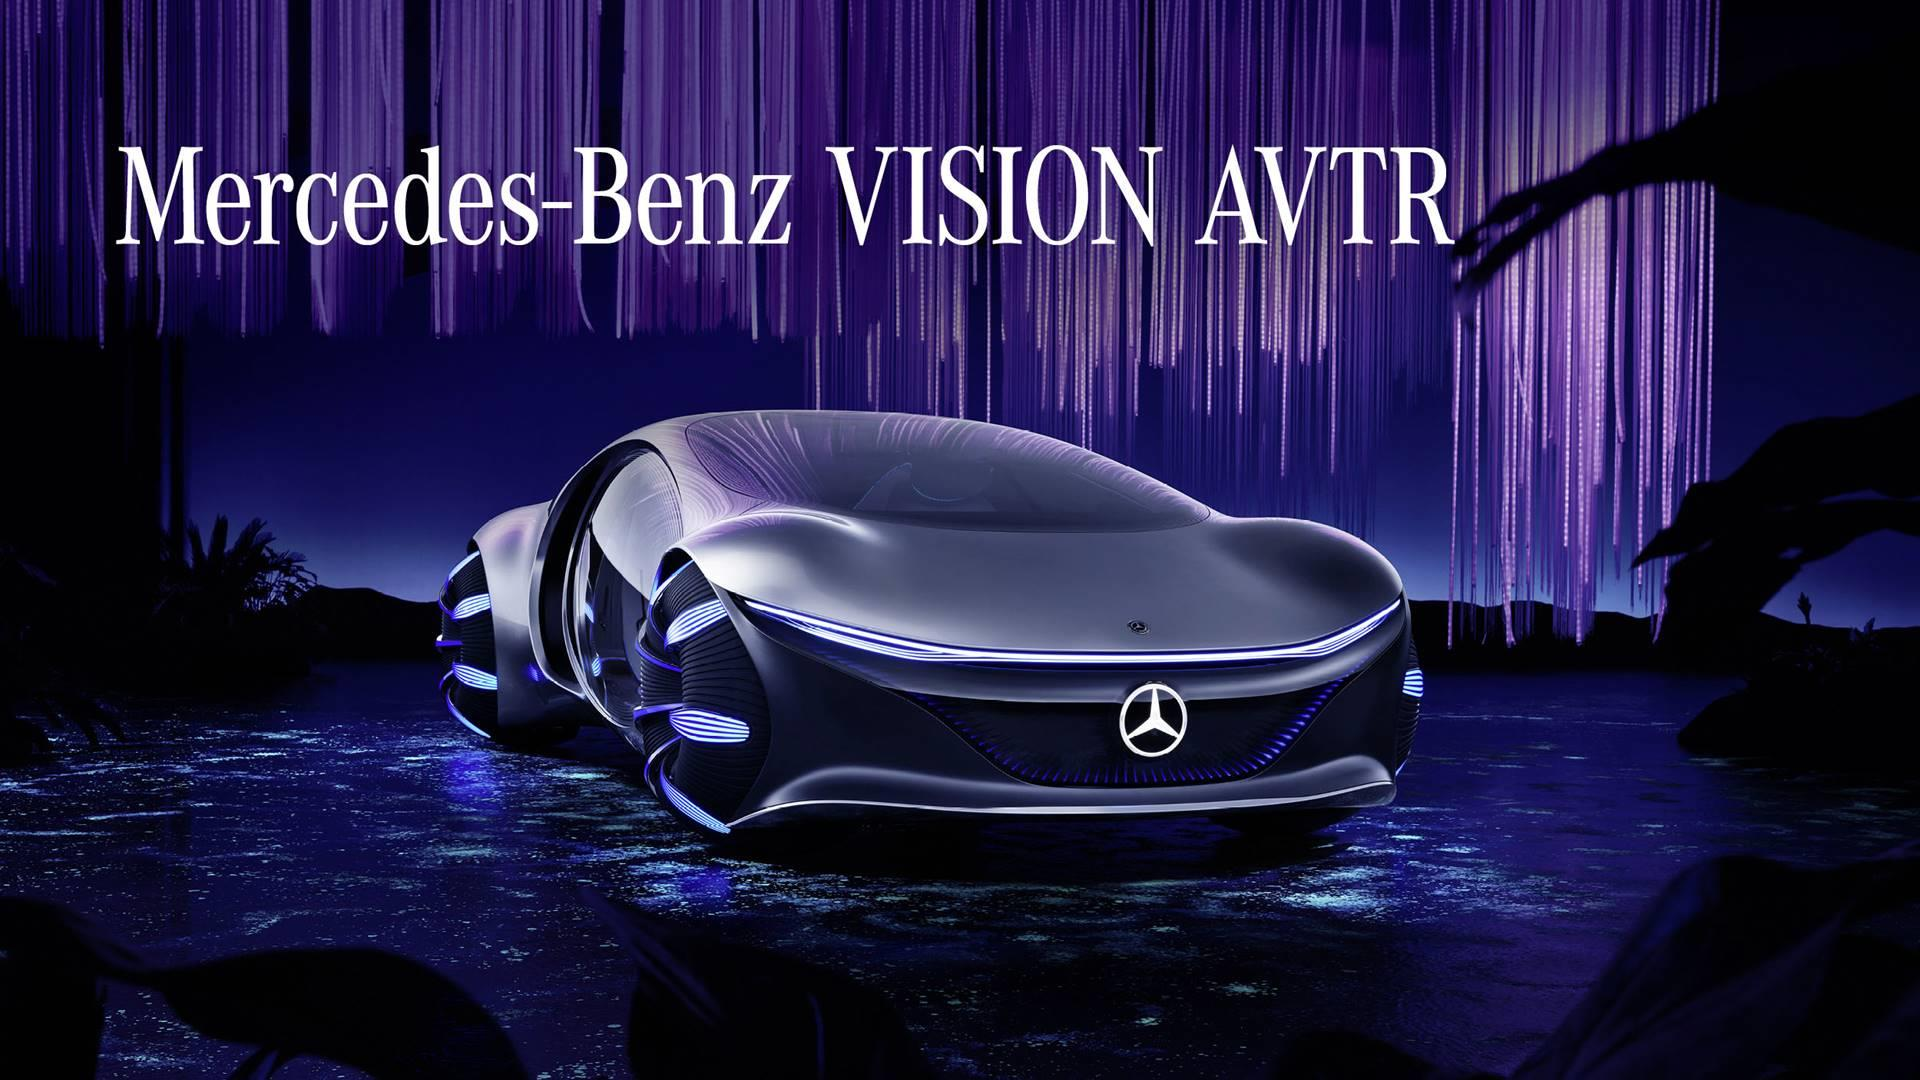 2020 Mercedes Benz VISION AVTR Concept News and Information 1920x1080